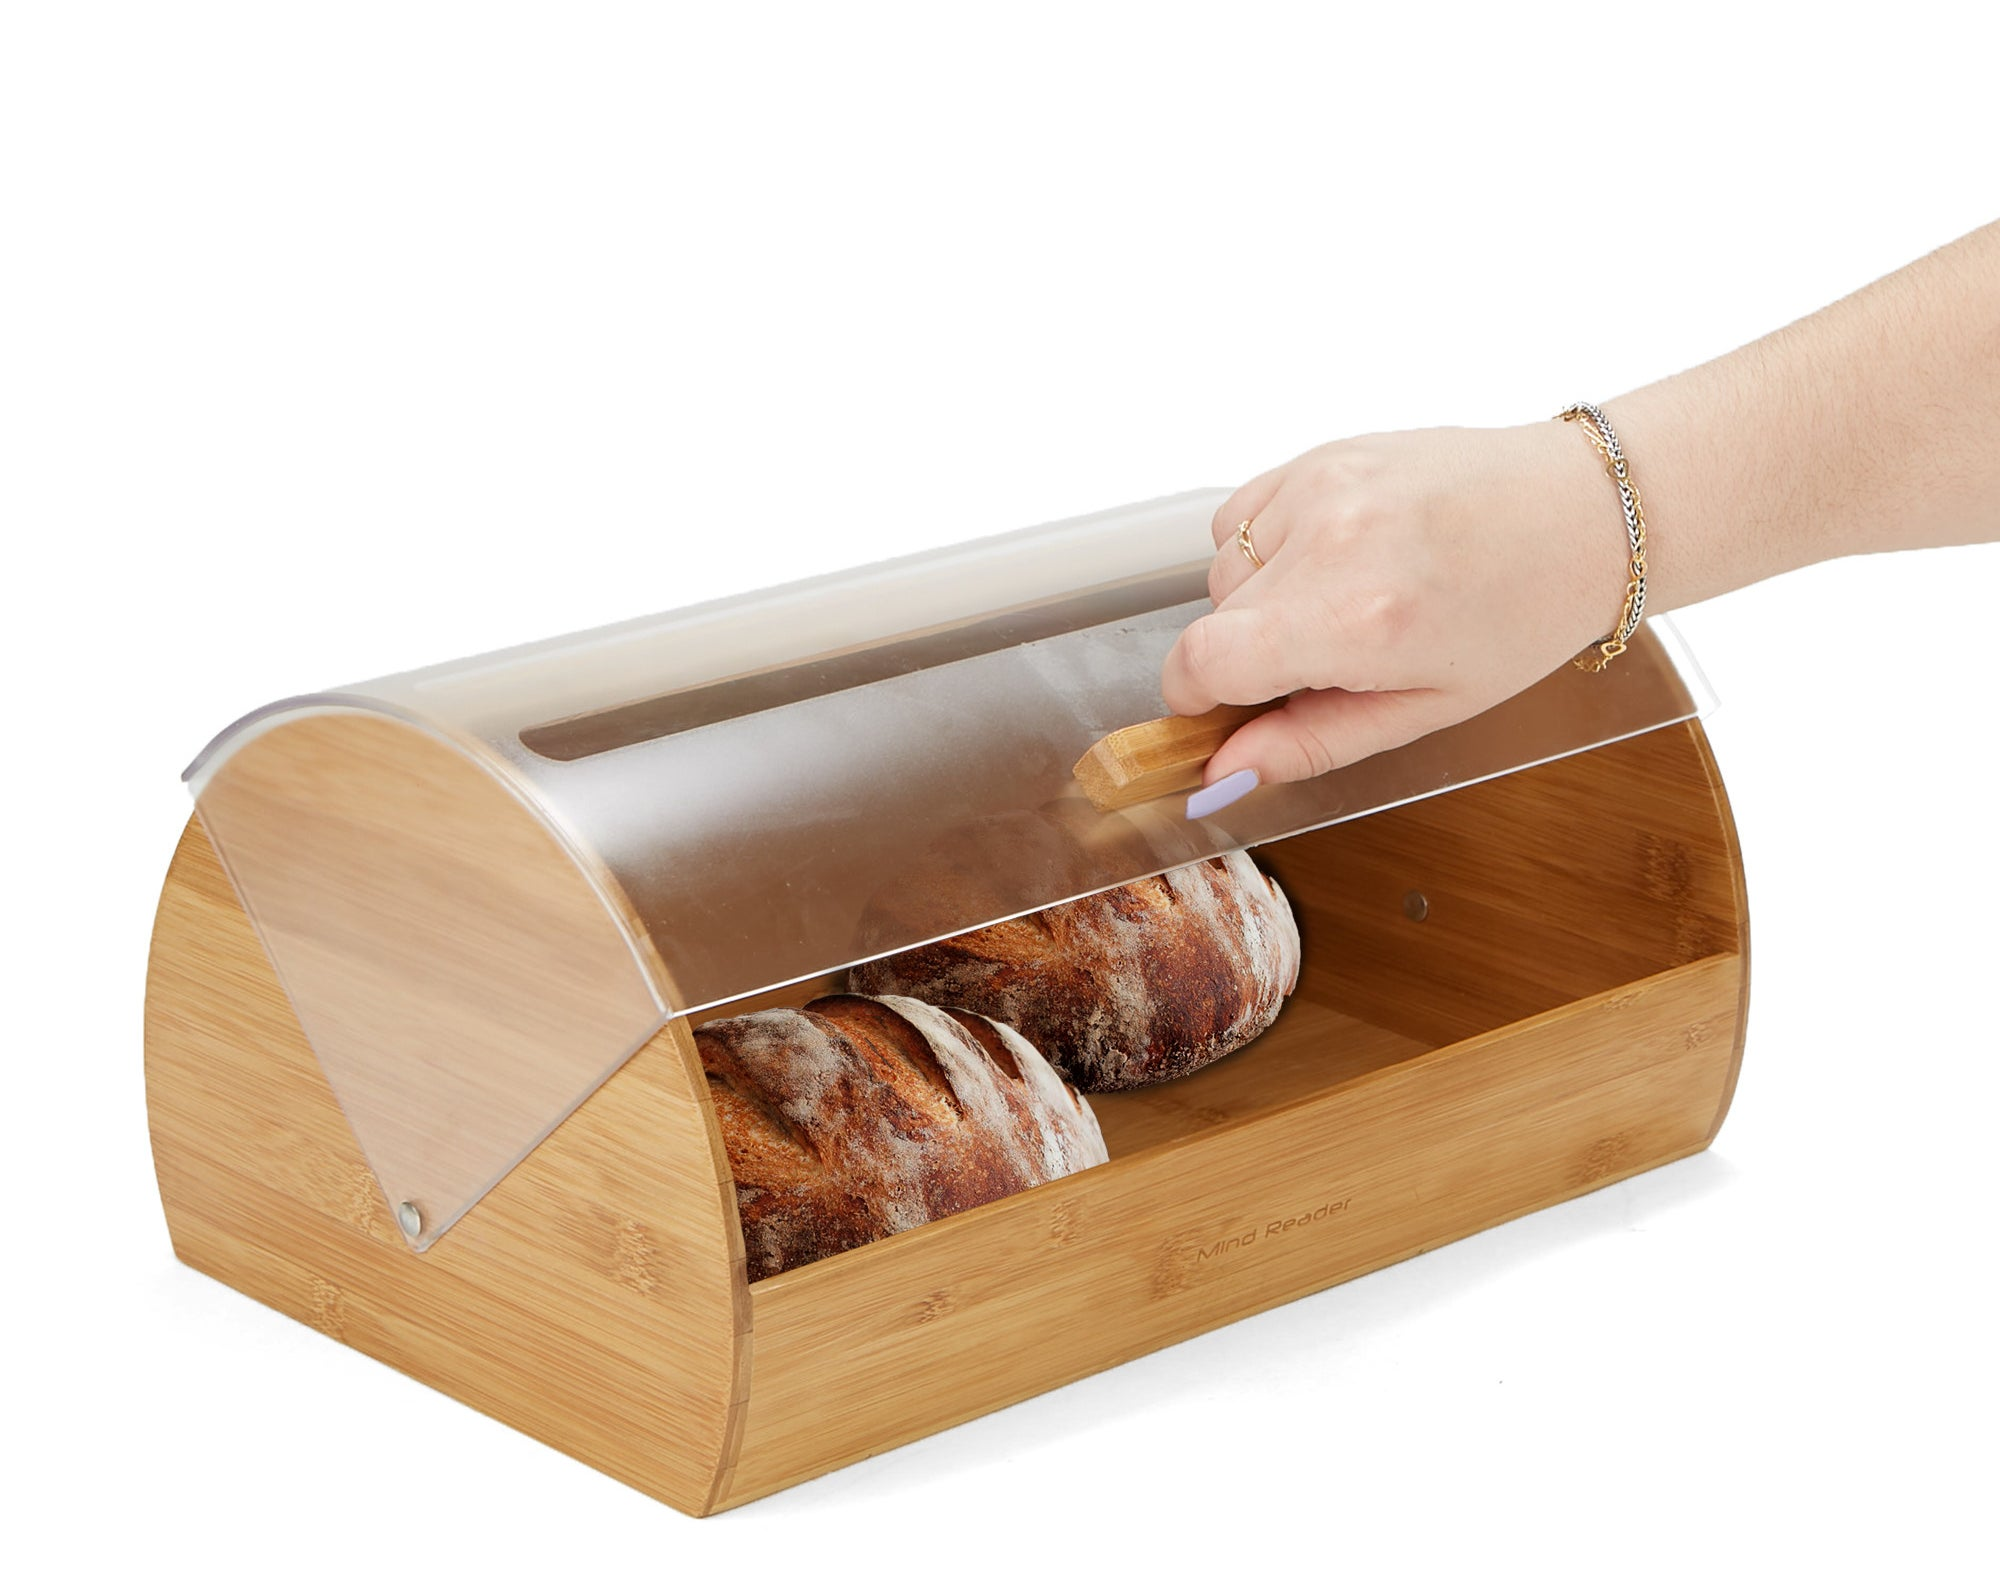 Model's hand opening the clear plastic lid of the bamboo bread box